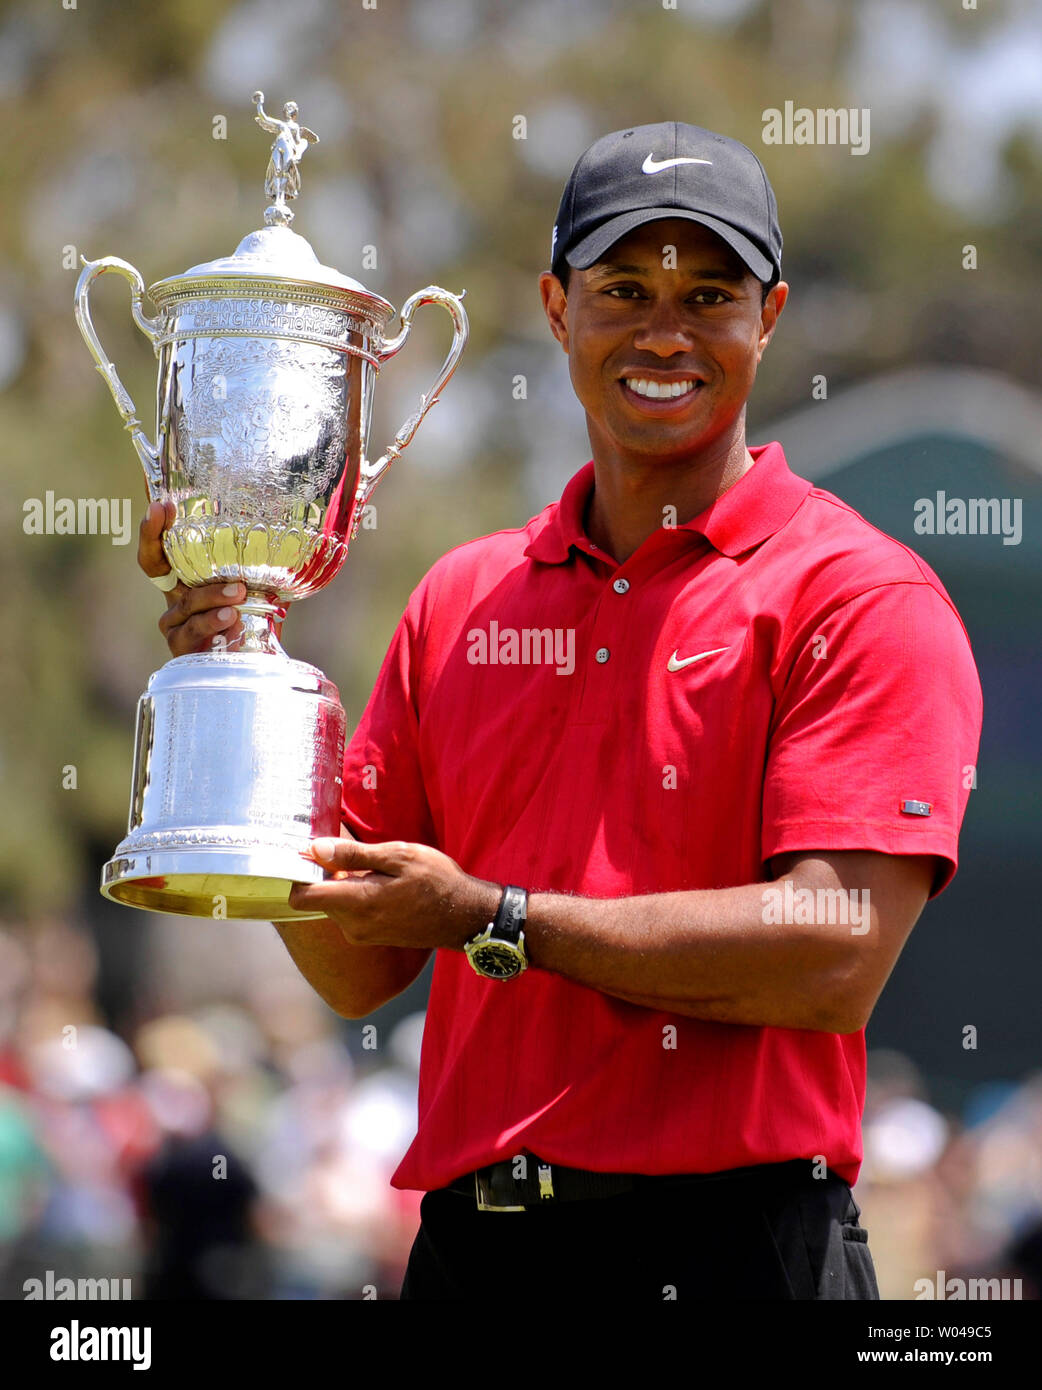 Tiger Woods hold the U.S. Open Trophy after winning the 108th U.S.  at Torrey Pines Golf Course in San Diego on June 15, 2008. Woods defeated Rocco Mediate by one stroke after a playoff round. (UPI Photo/Kevin Dietsch) - Stock Image